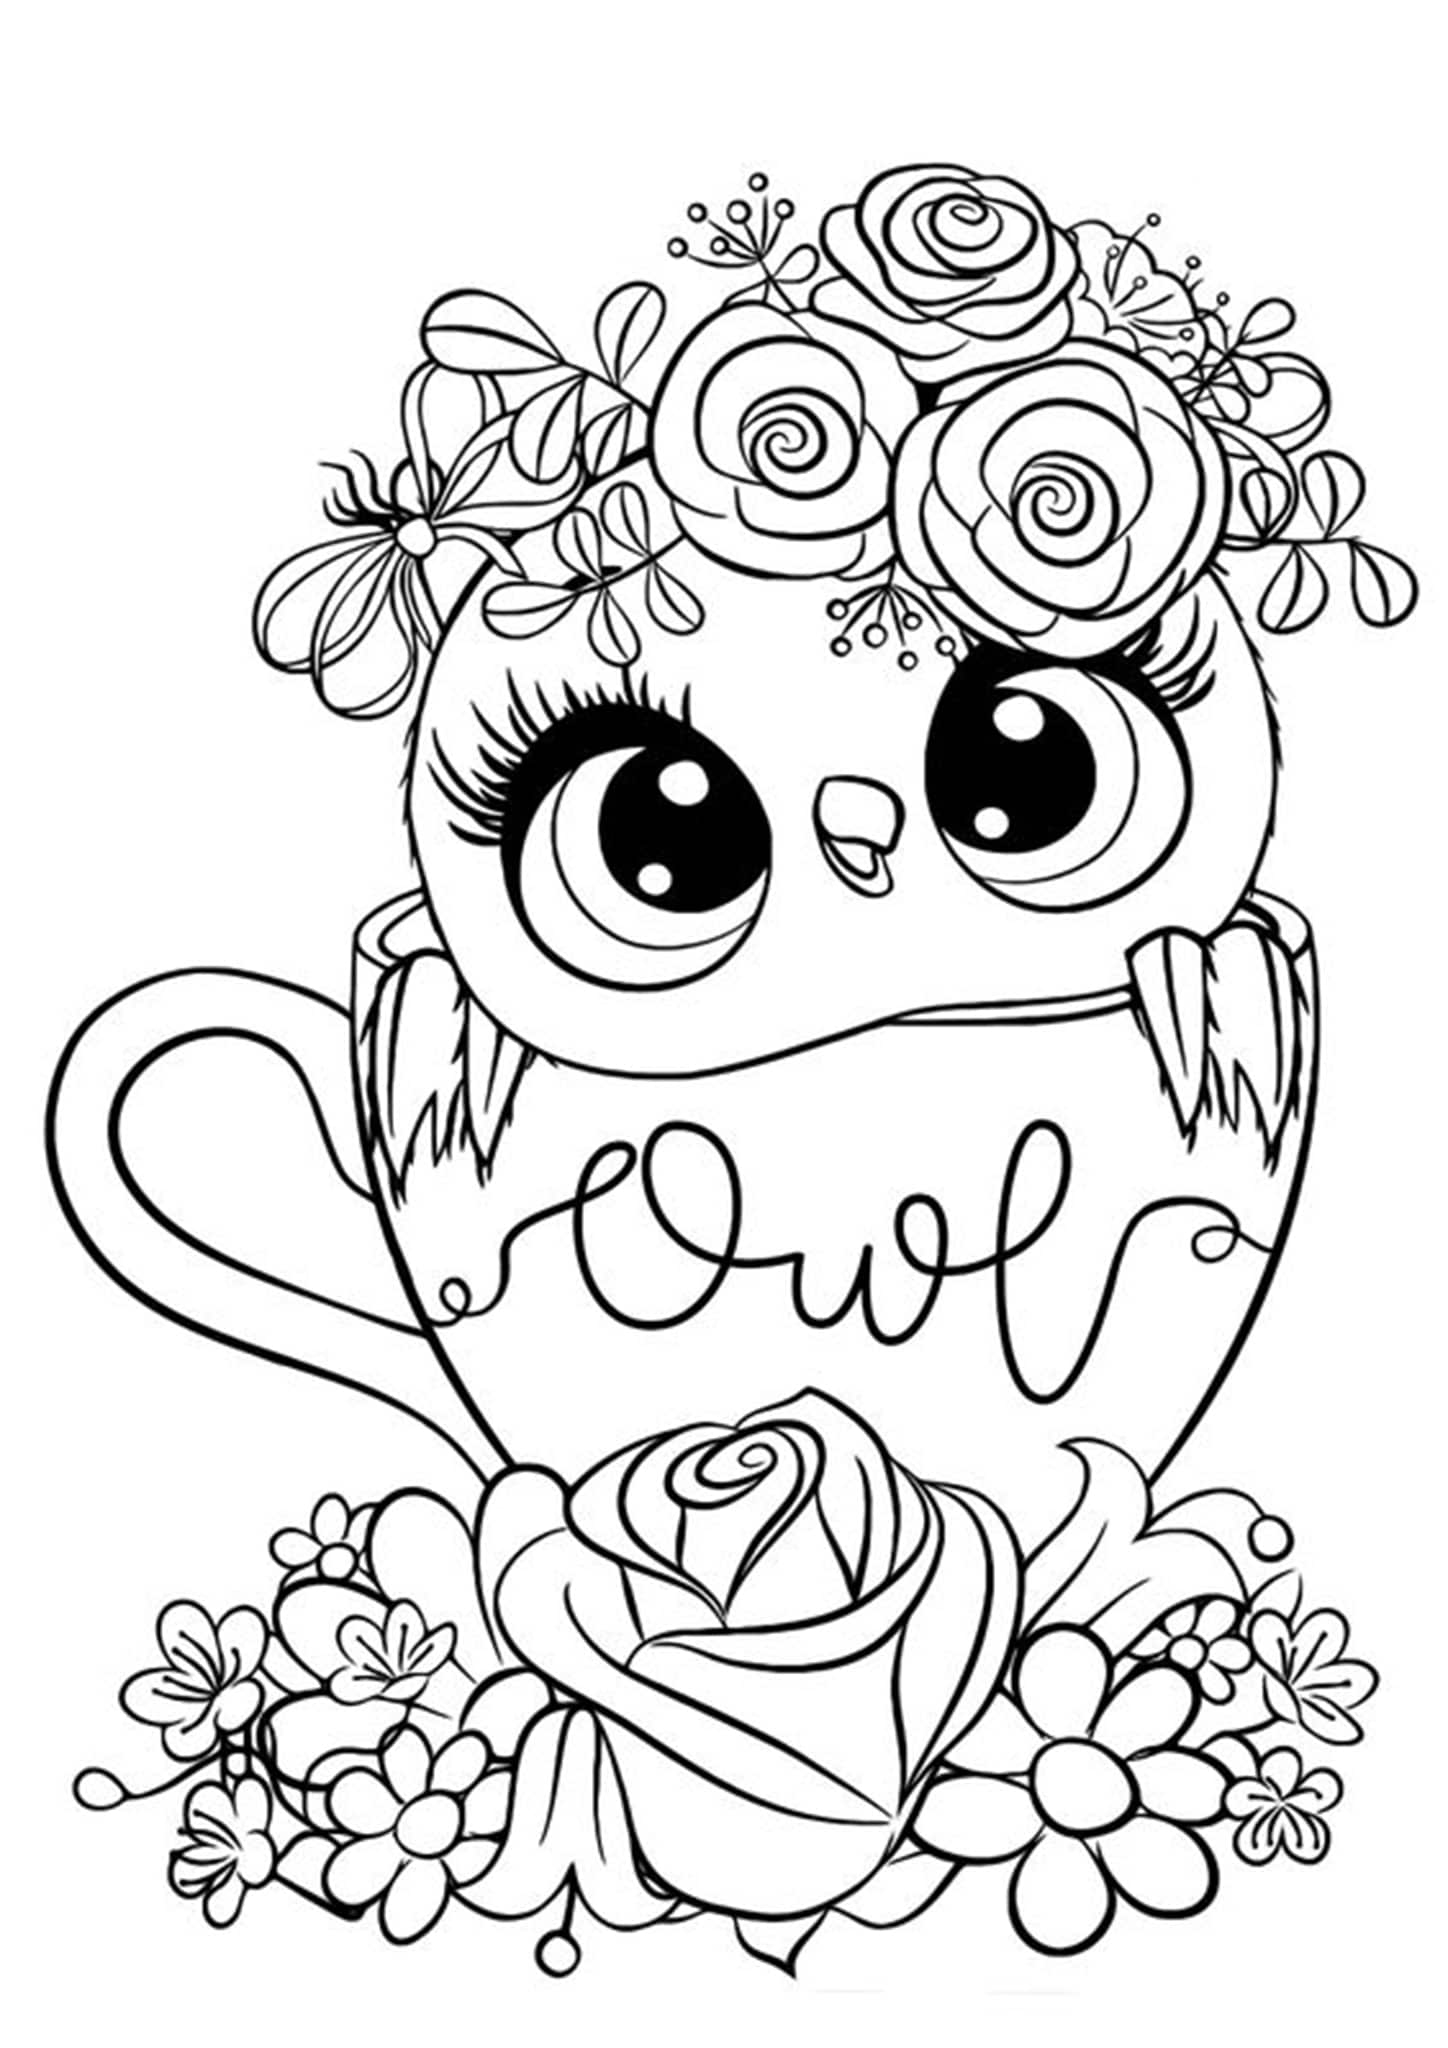 finished owl coloring pages completed adult coloring pages at getcoloringscom free coloring owl pages finished